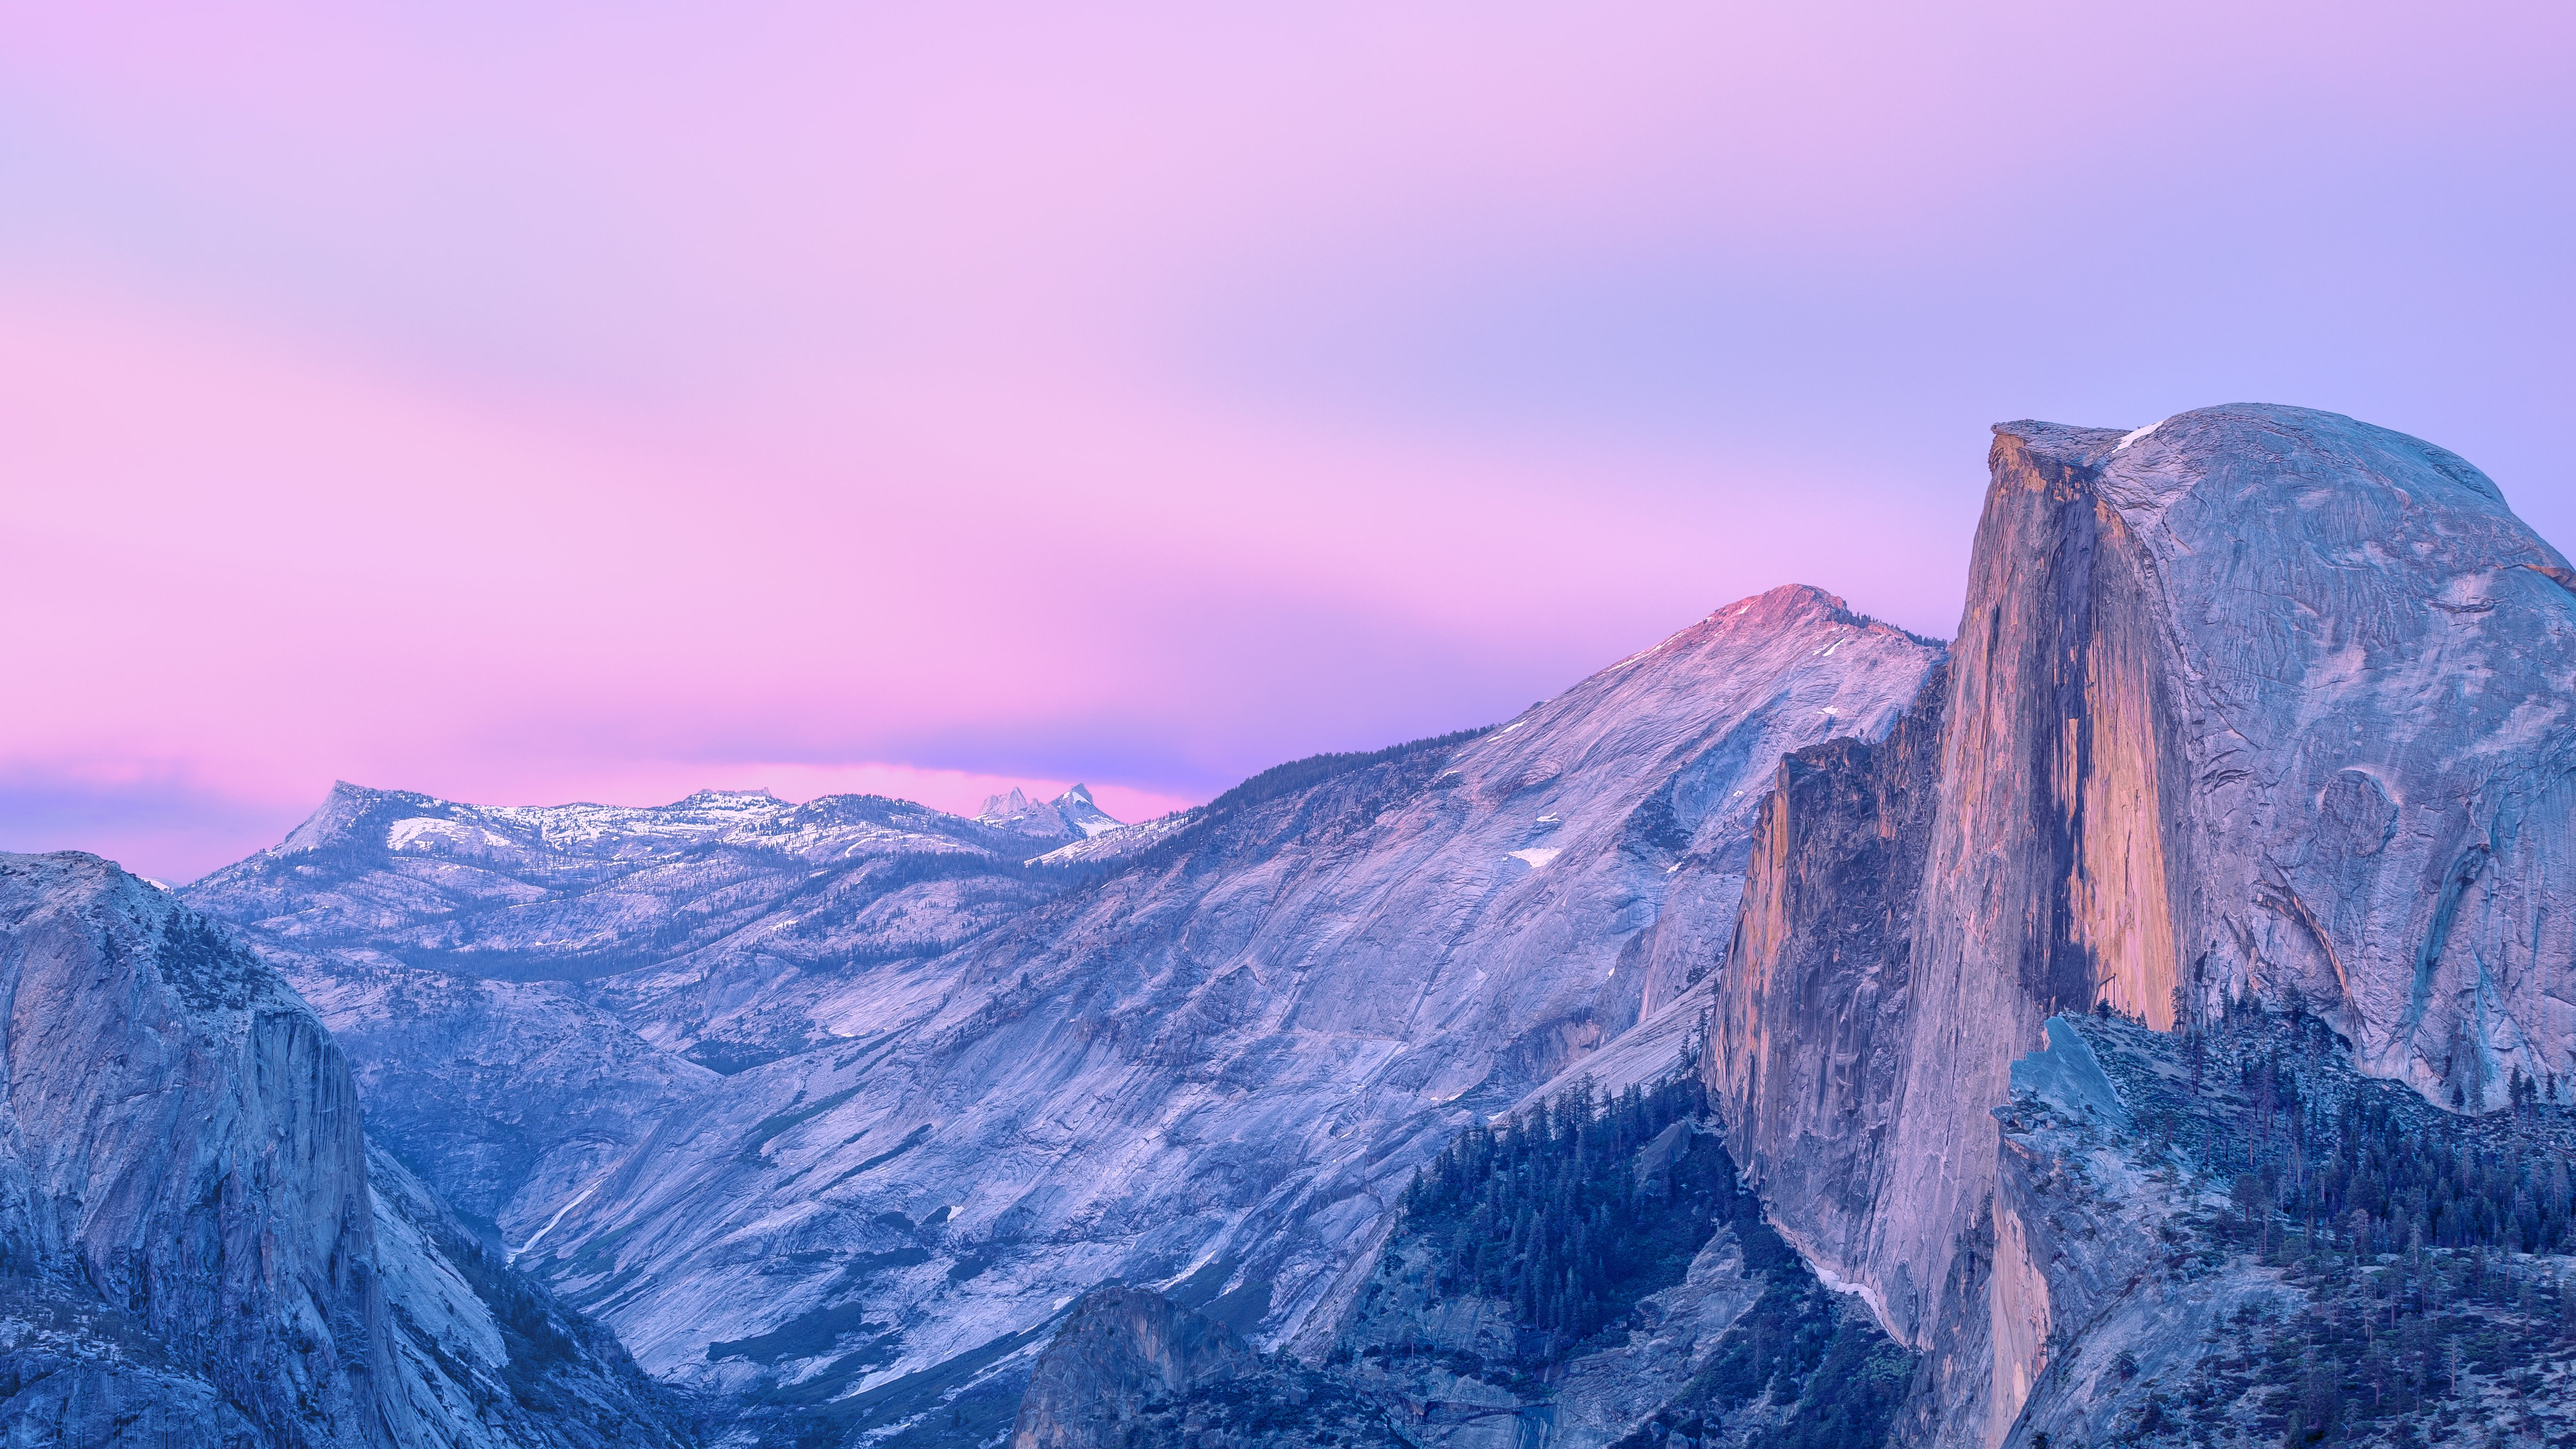 Download the new OS X Yosemite wallpapers for Mac iPhone and iPad 4832x2718